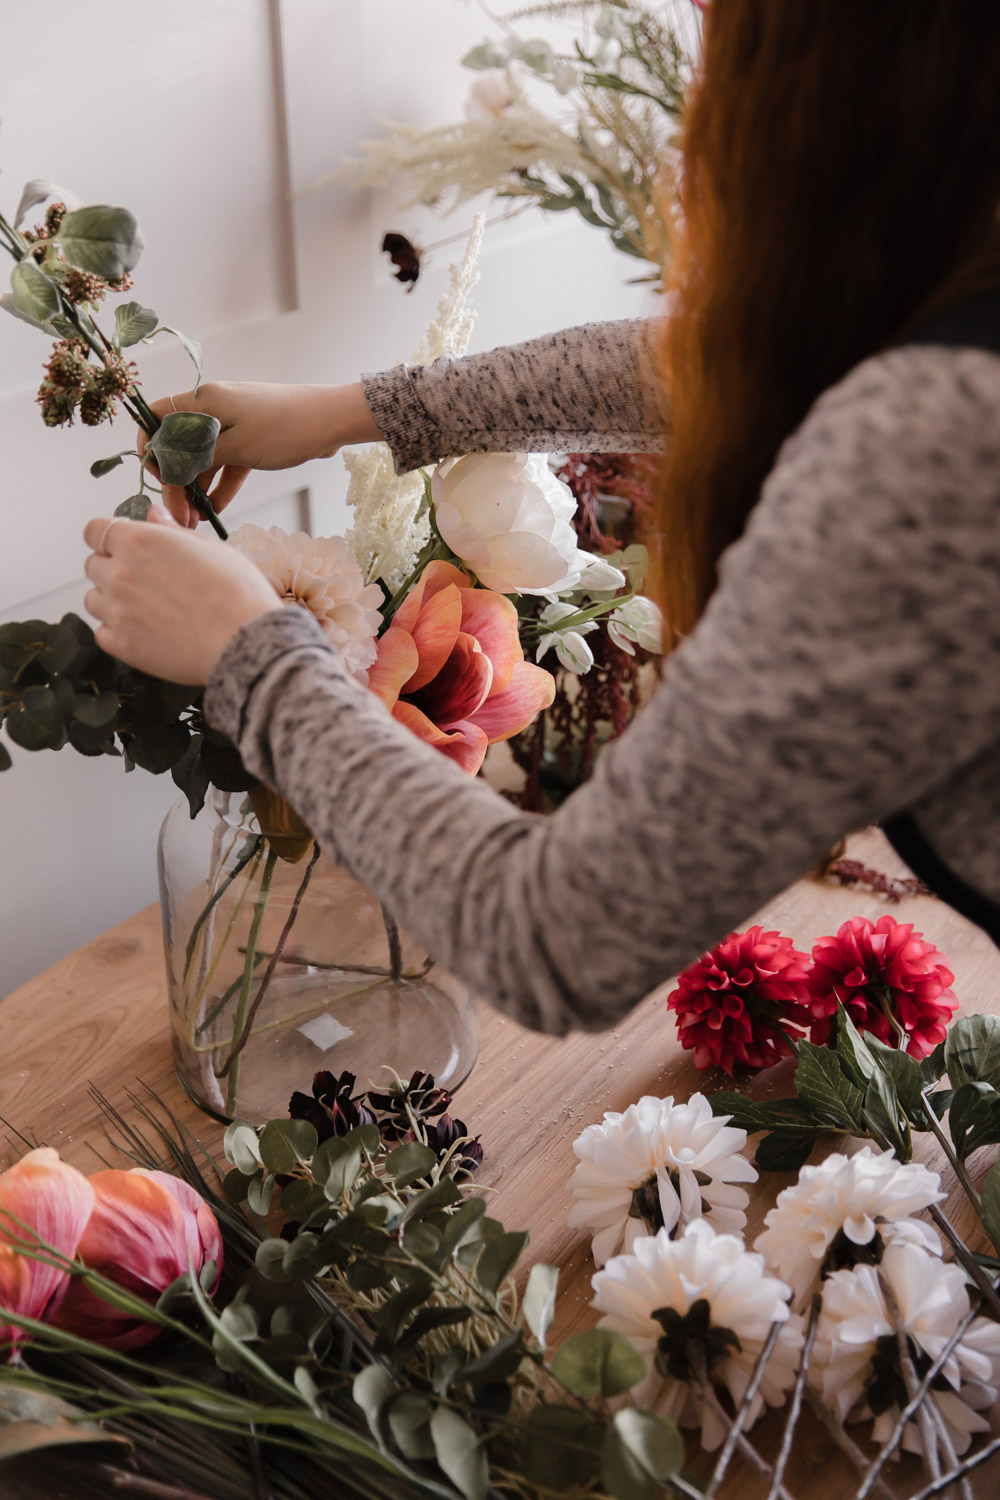 Flower arranging with faux flowers